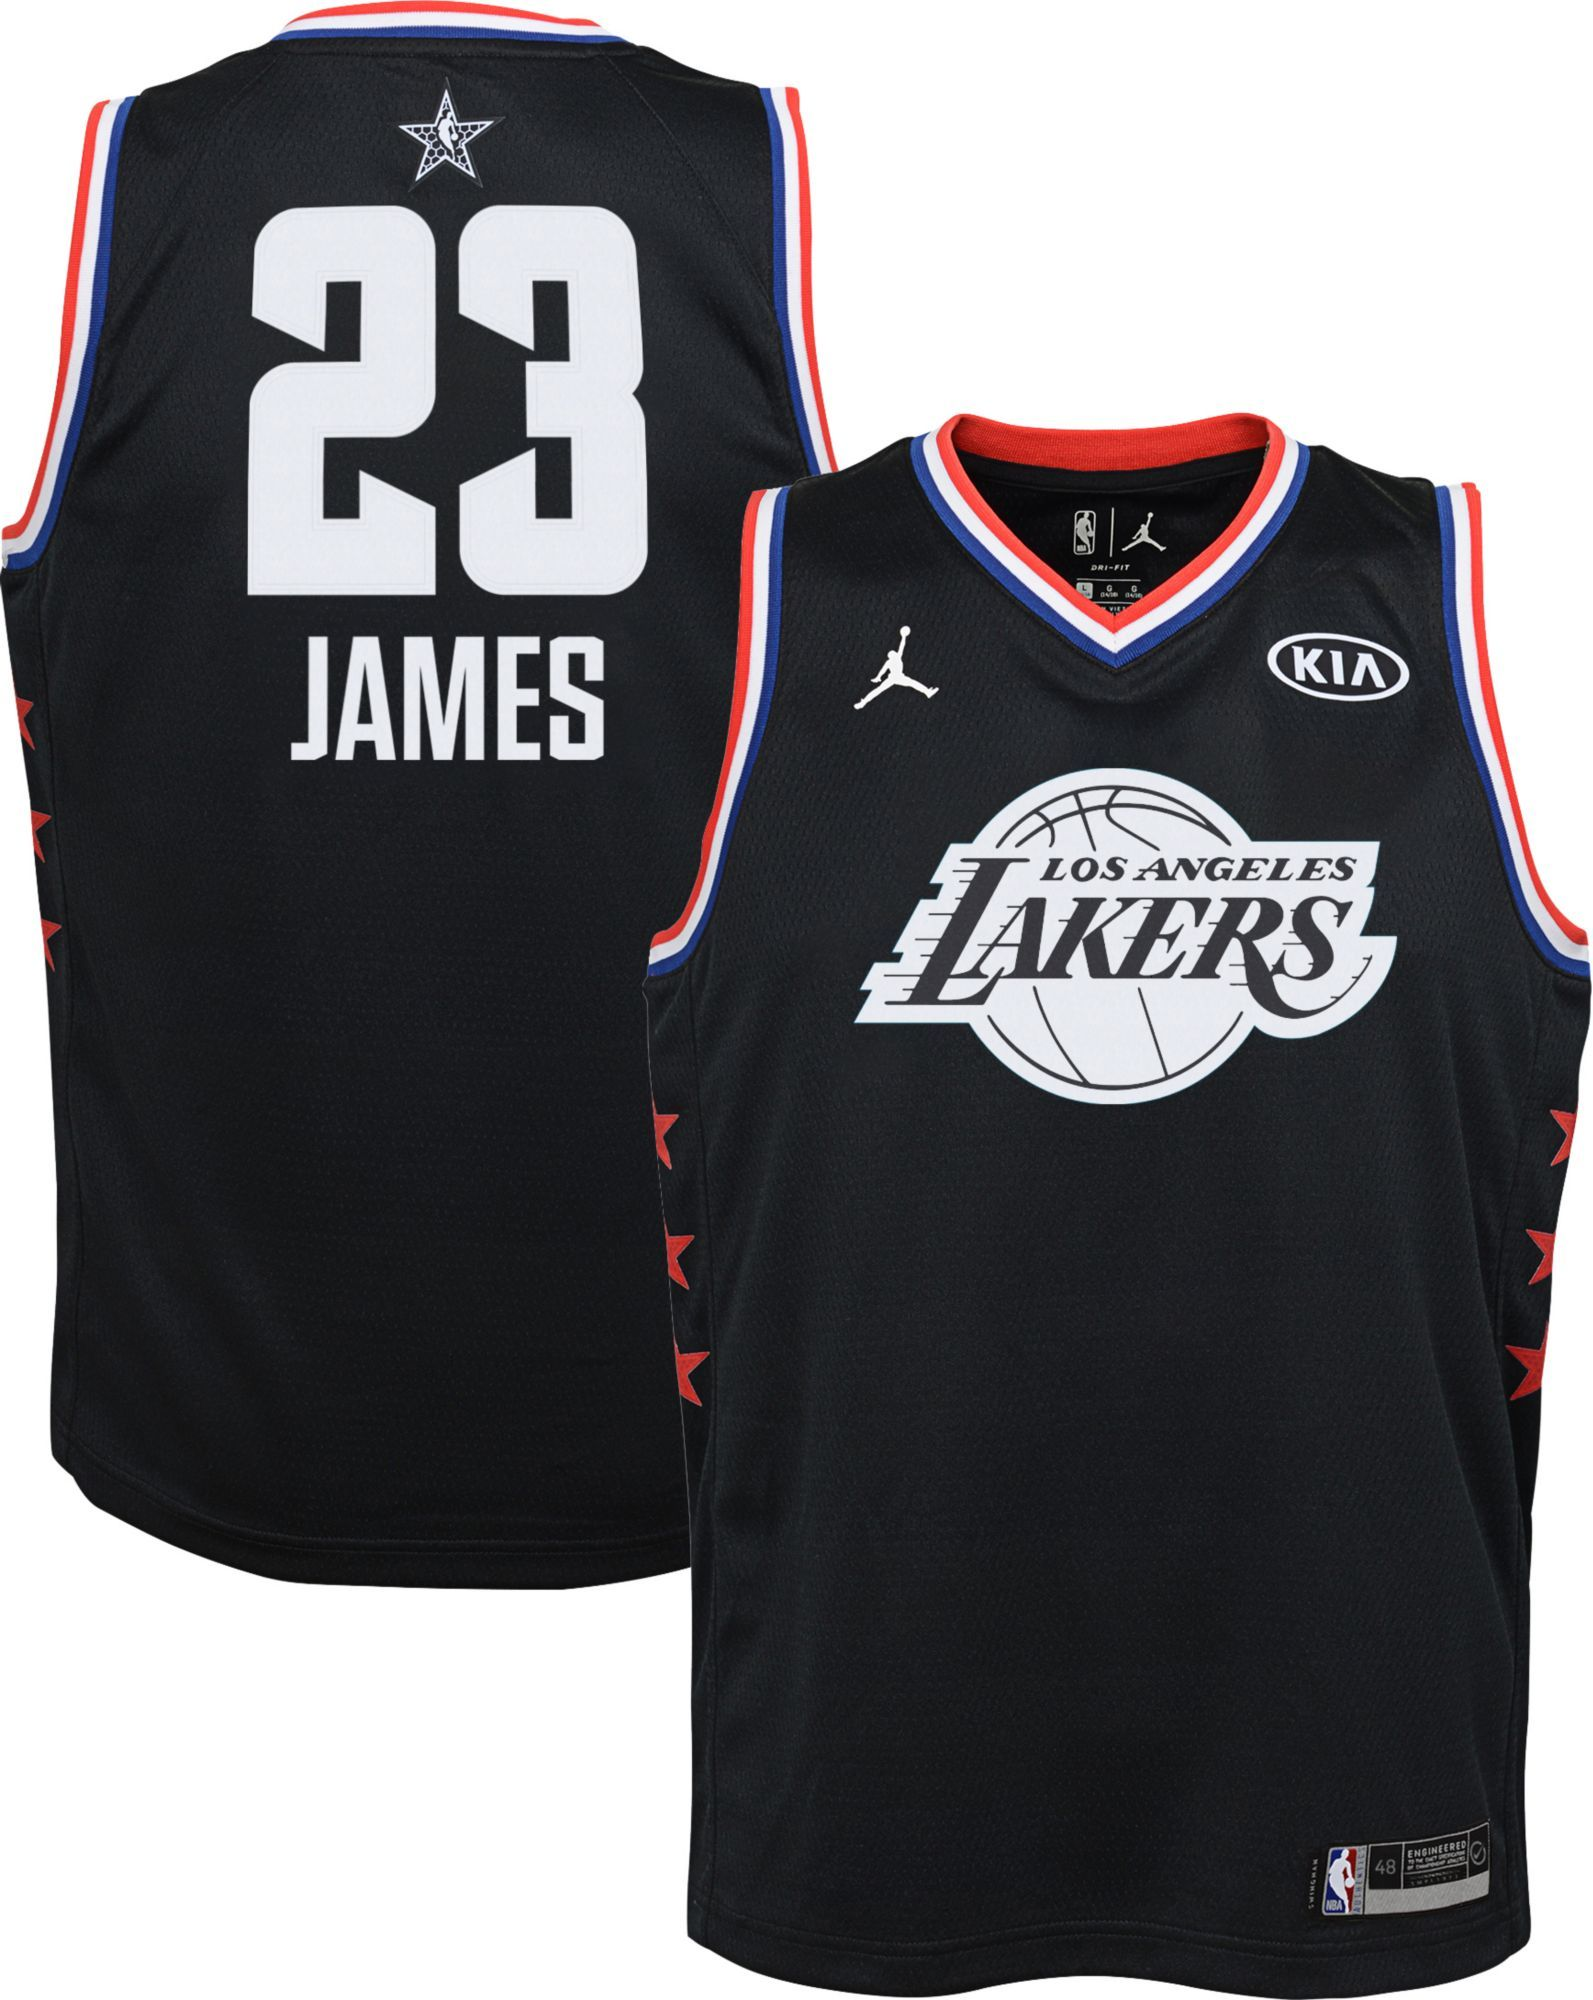 on sale 4b53c 92dc9 Jordan Youth 2019 NBA All-Star Game LeBron James Black Dri ...